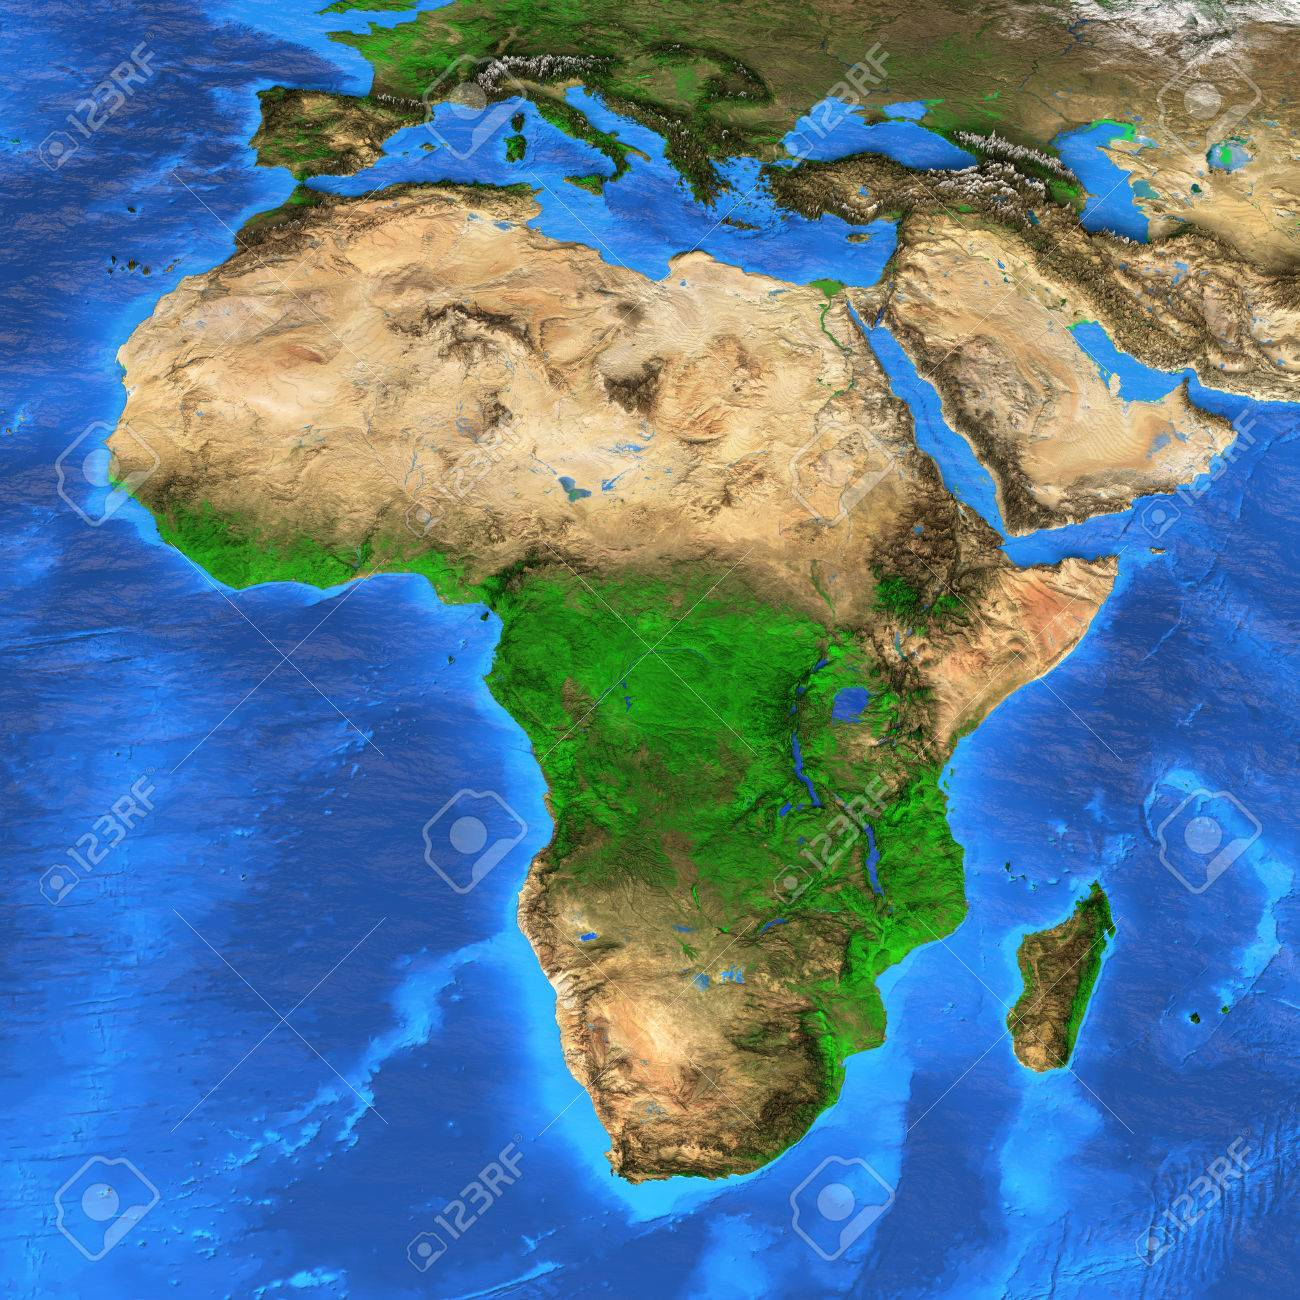 Detailed Satellite View Of The Earth And Its Landforms Africa